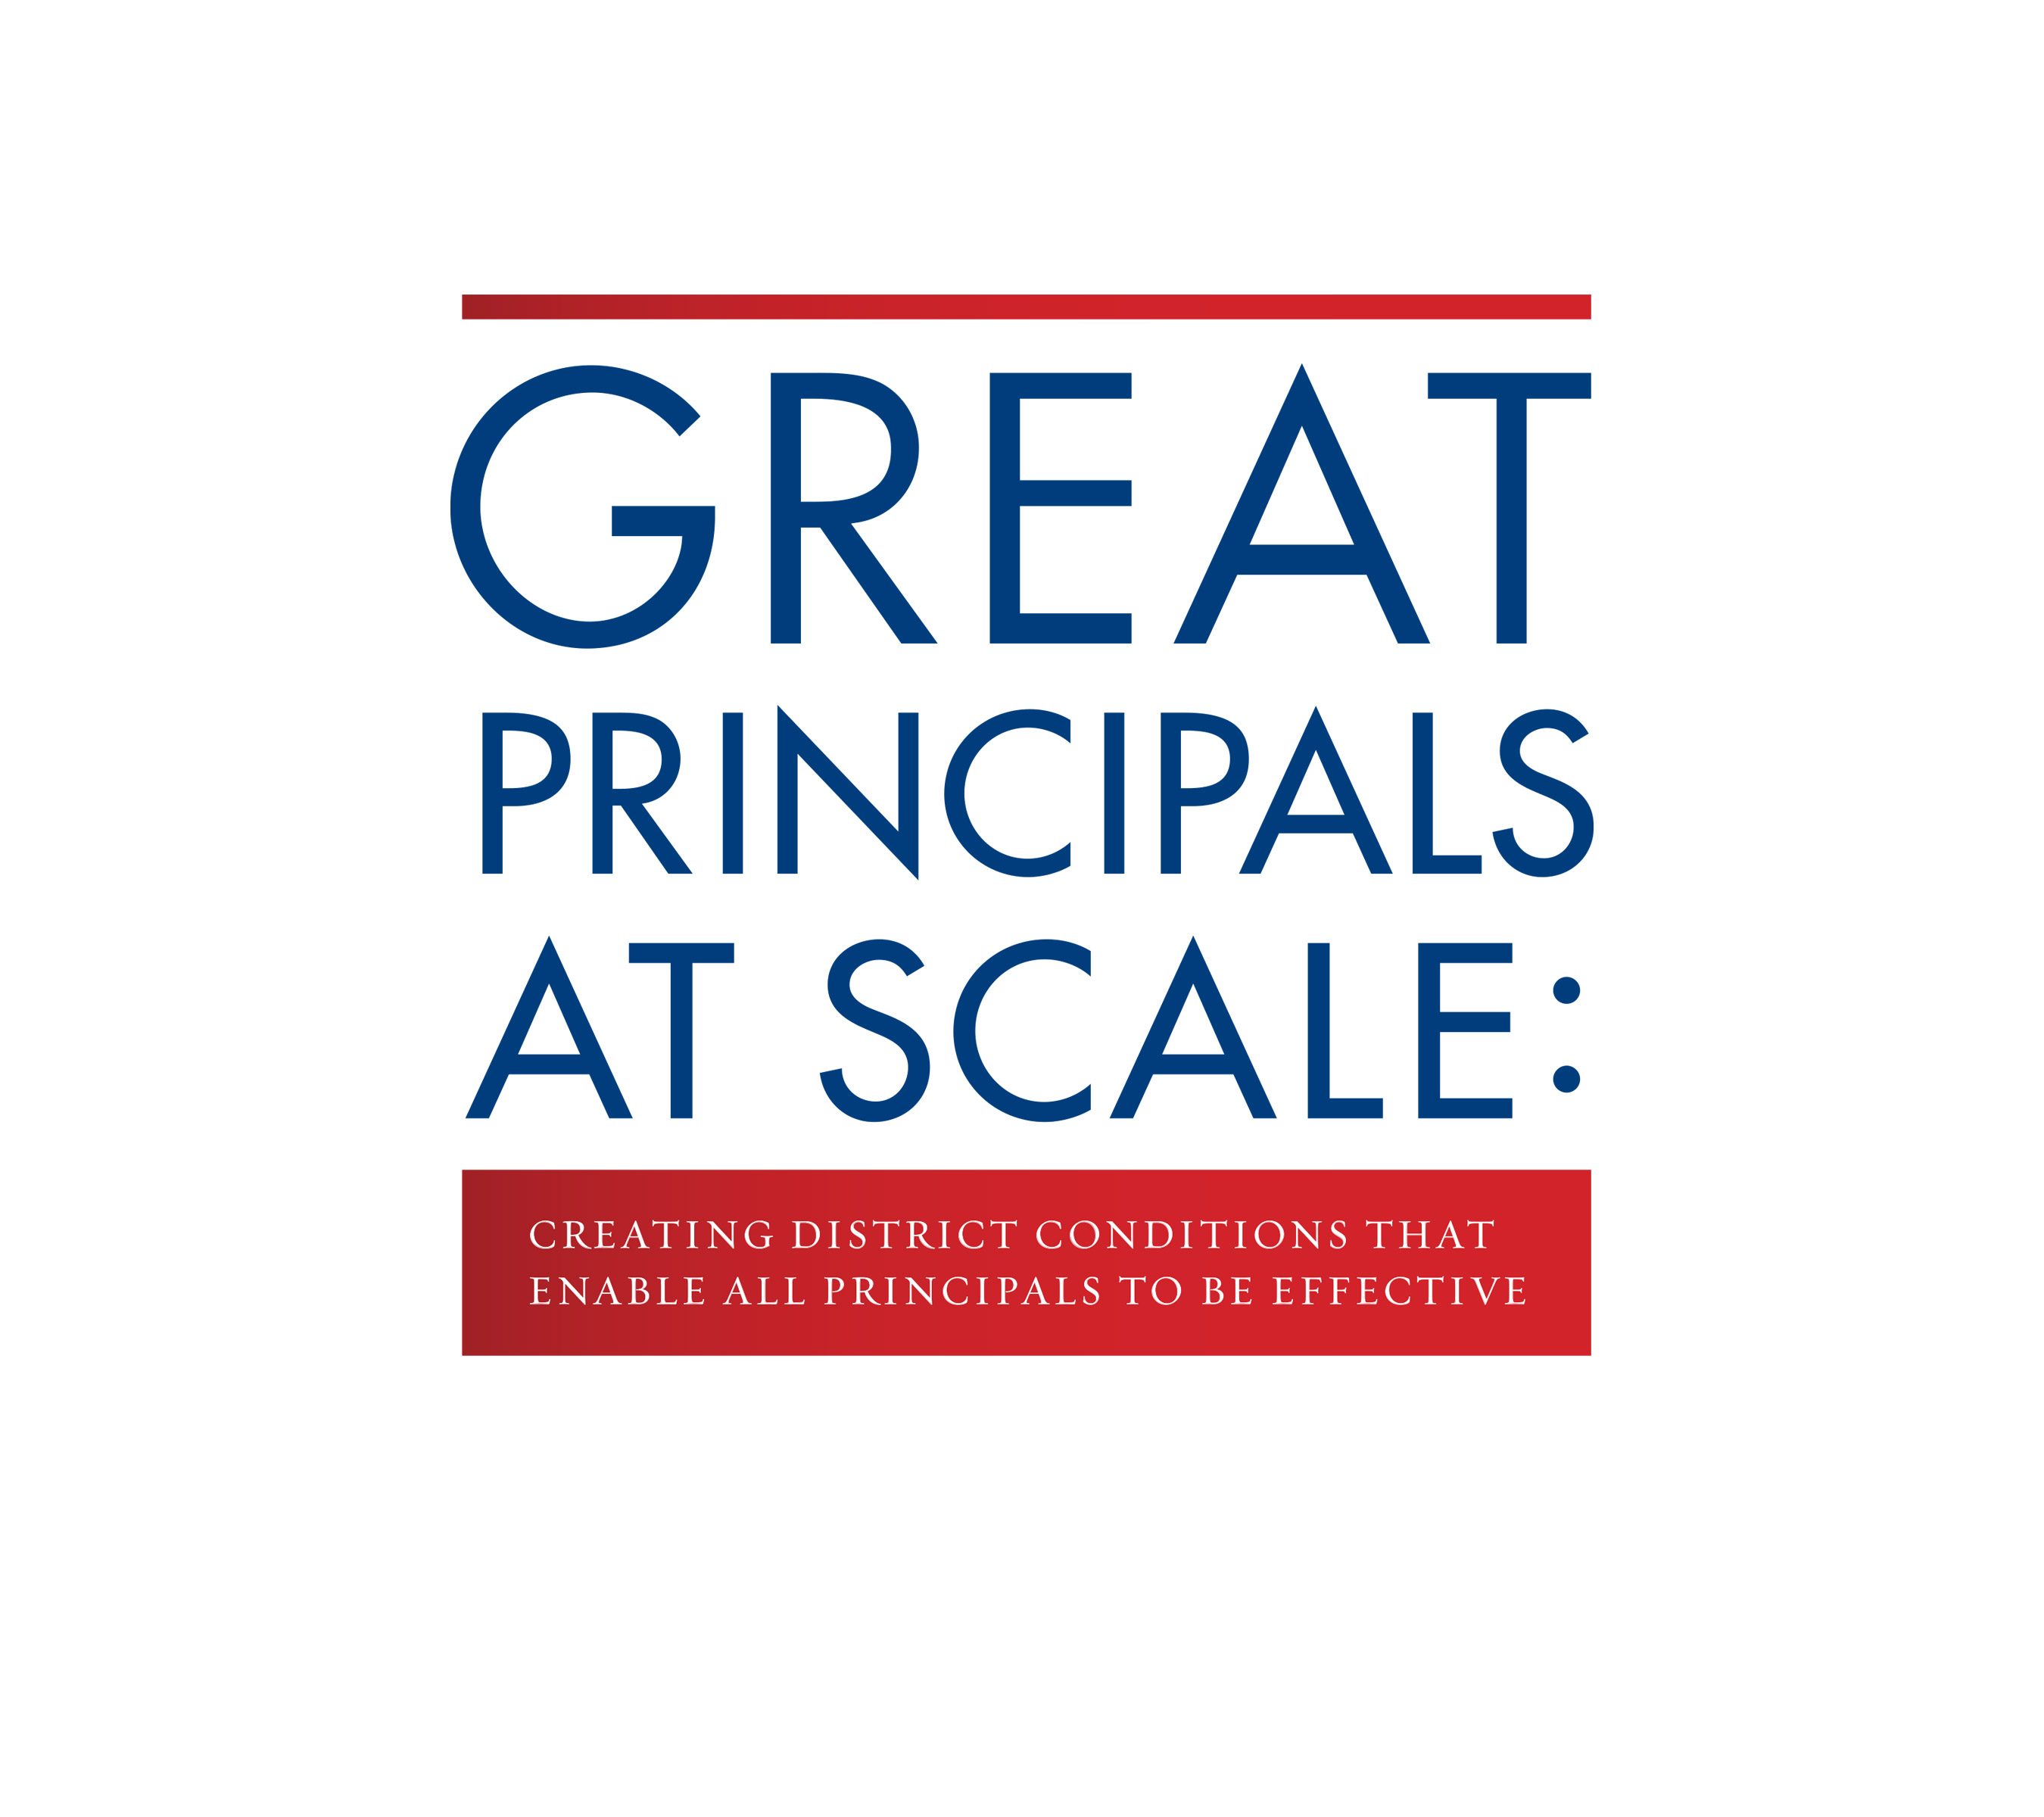 Great Principals at Scale